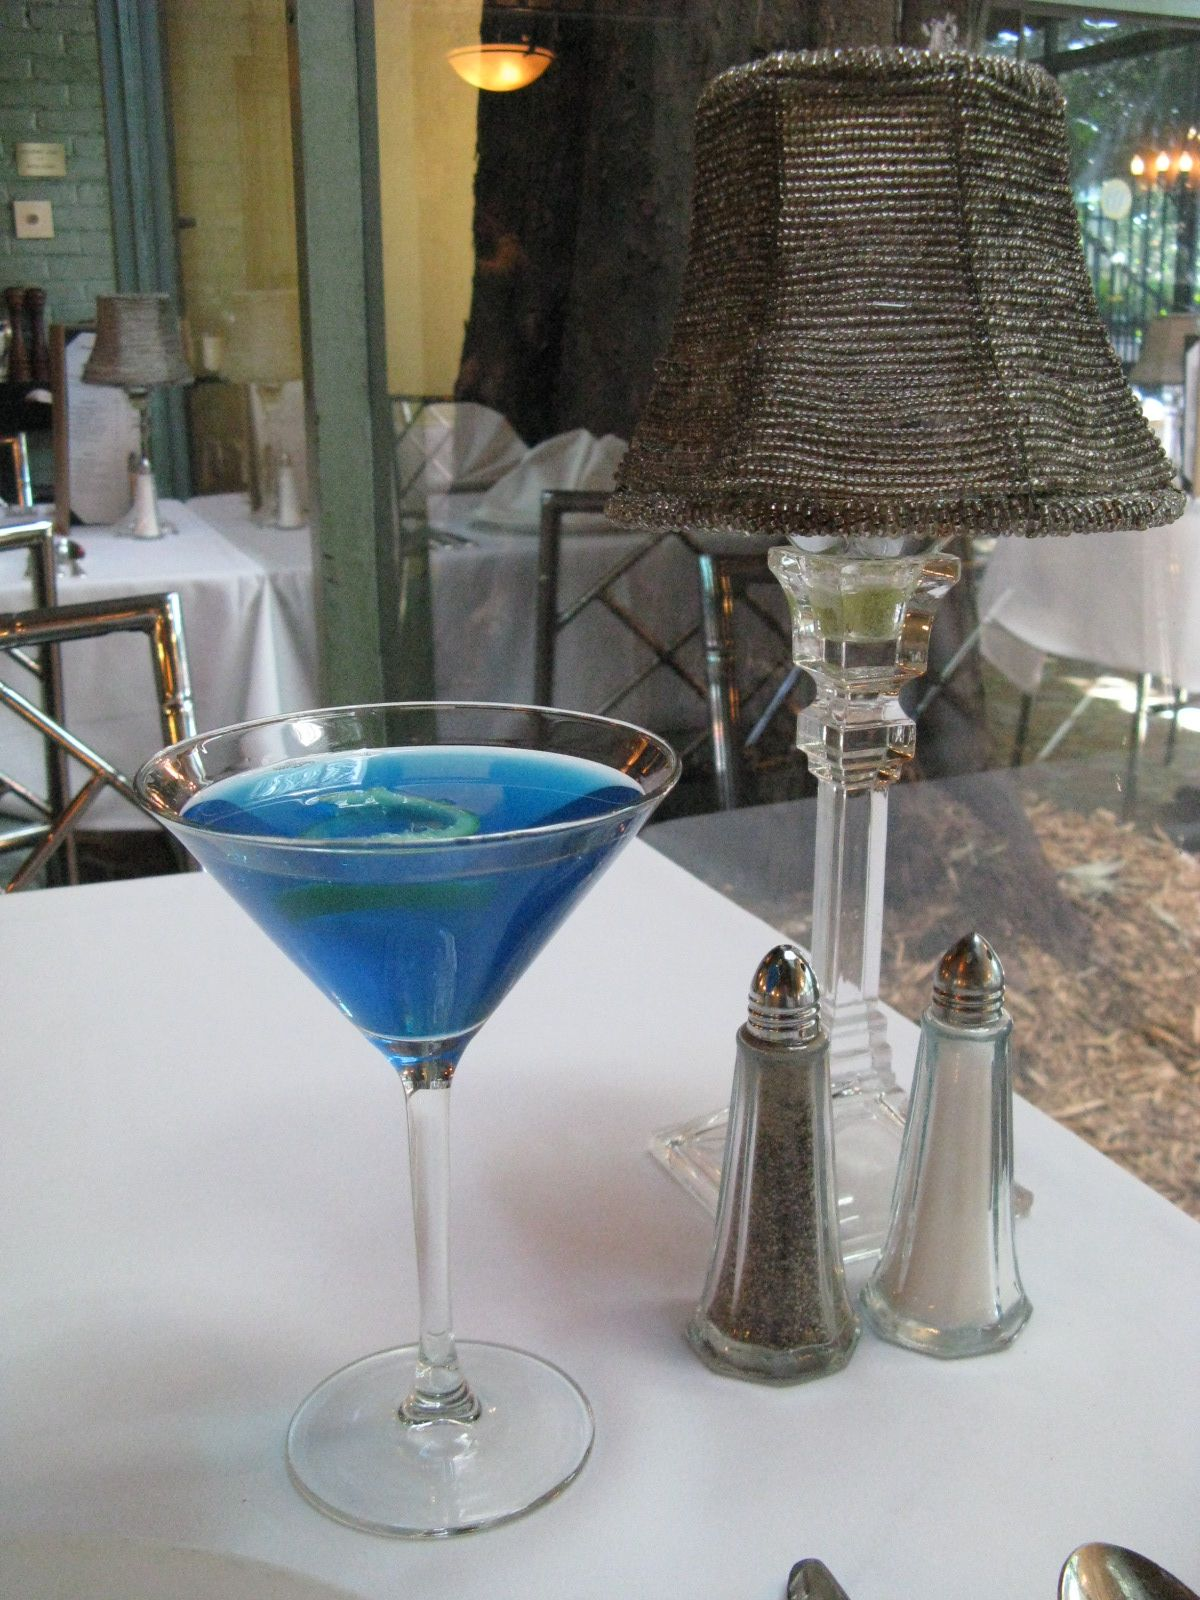 Martini lunch at Commanders Palace